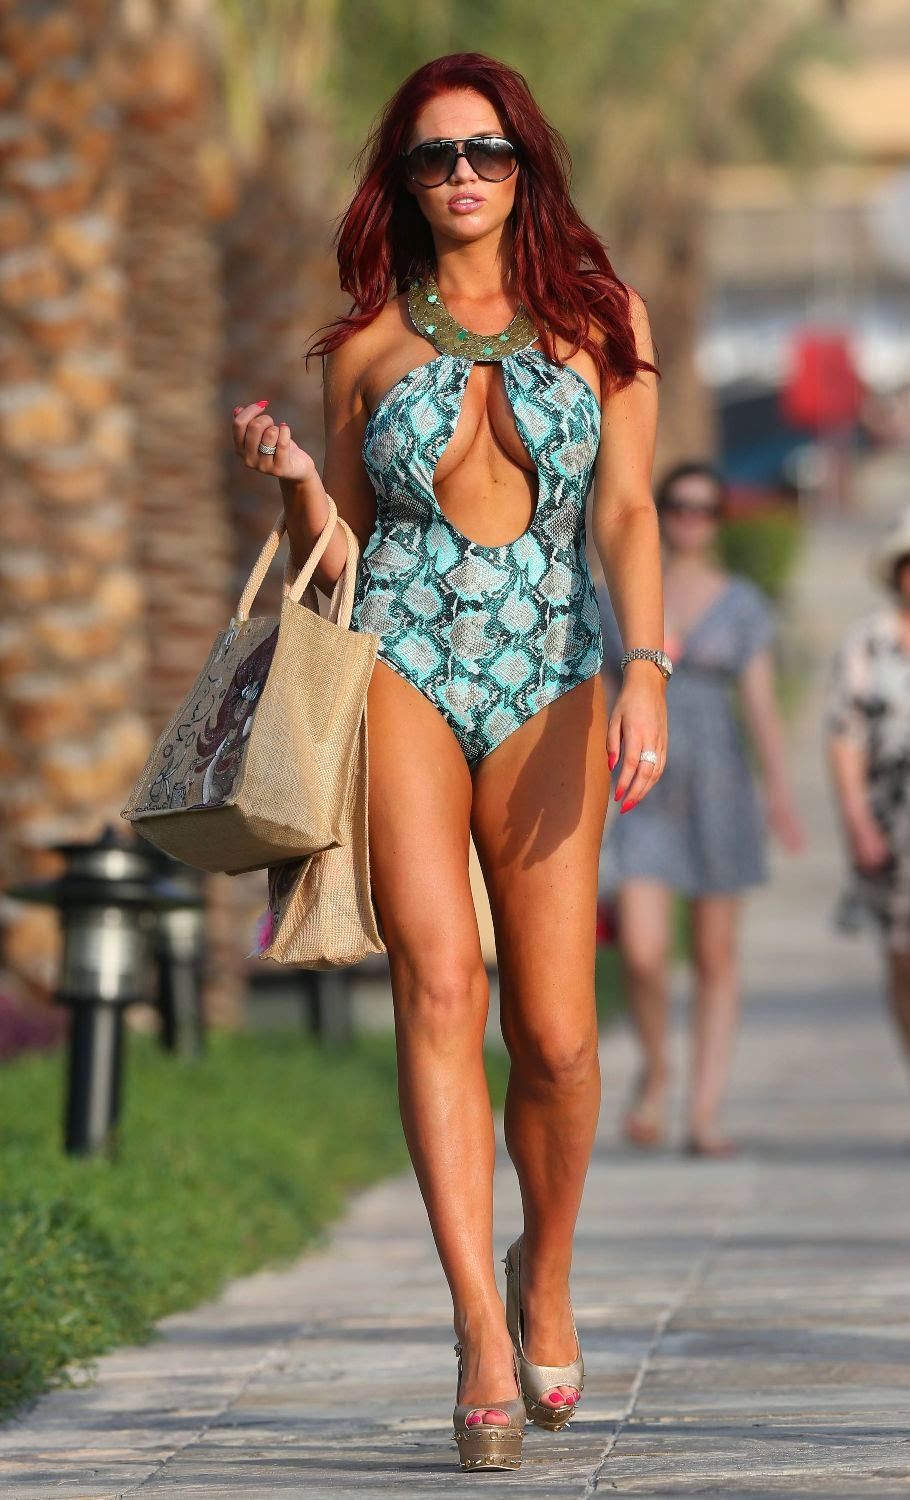 Amy Childs Bikini Photos